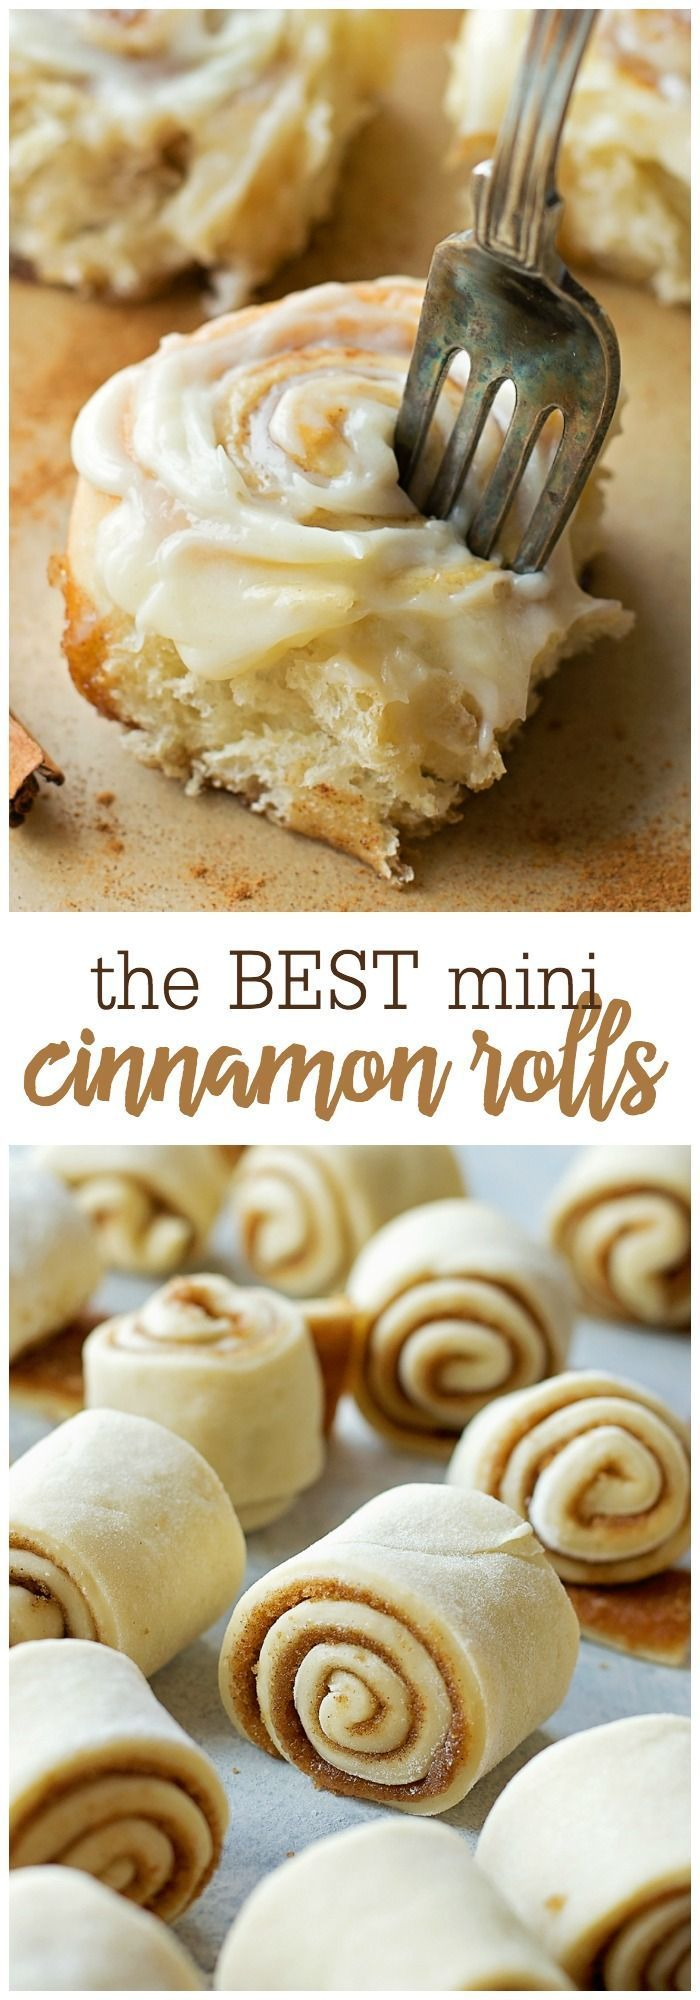 Best Ever Mini Cinnamon Rolls - perfect for big gatherings, and ready in just under 90 minutes!! Give these a try and you'll fall in love with their tender, sweet centers and irresistible cream cheese frosting!